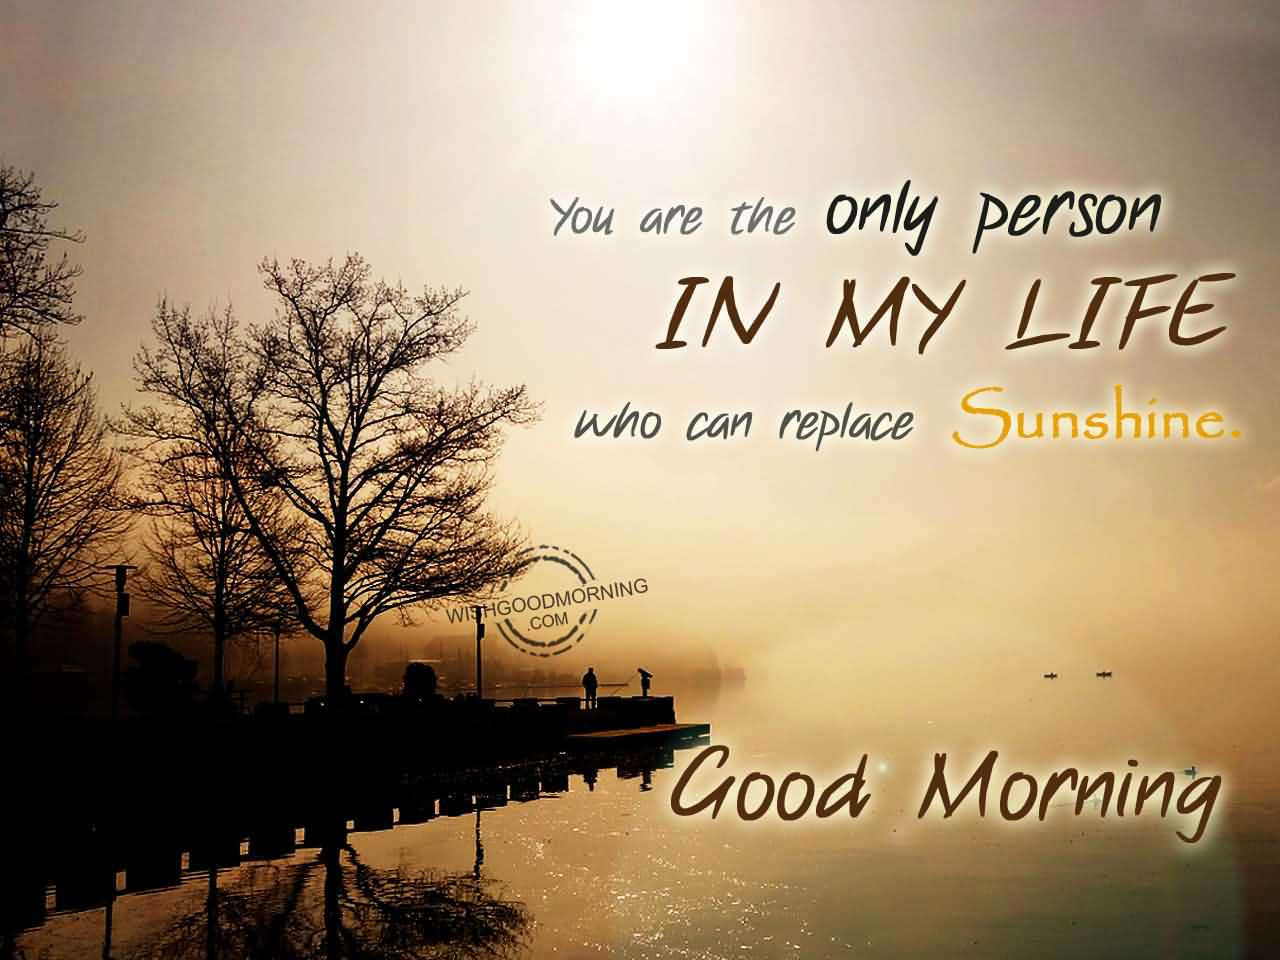 Good Morning Love Of My Life : Best good morning wishes pictures images wallpapers